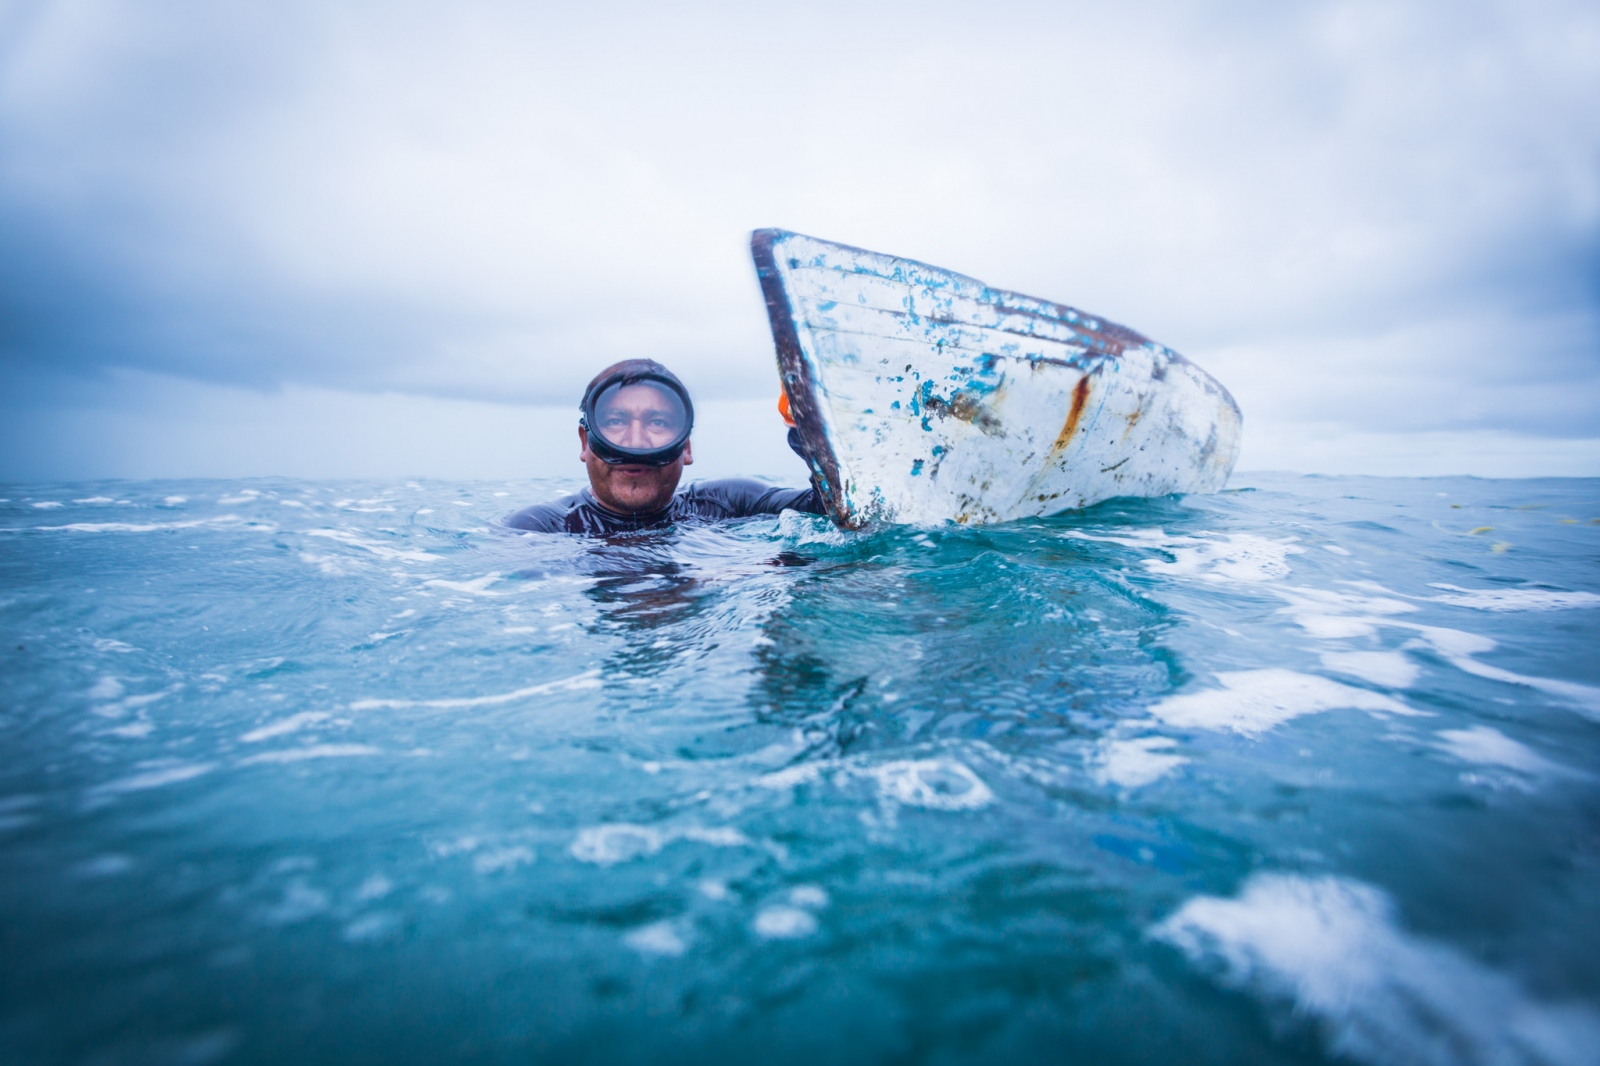 Conch diver, outer cayes, Belize. From a campaign supporting the Managed Access fisheries management program in Belize.